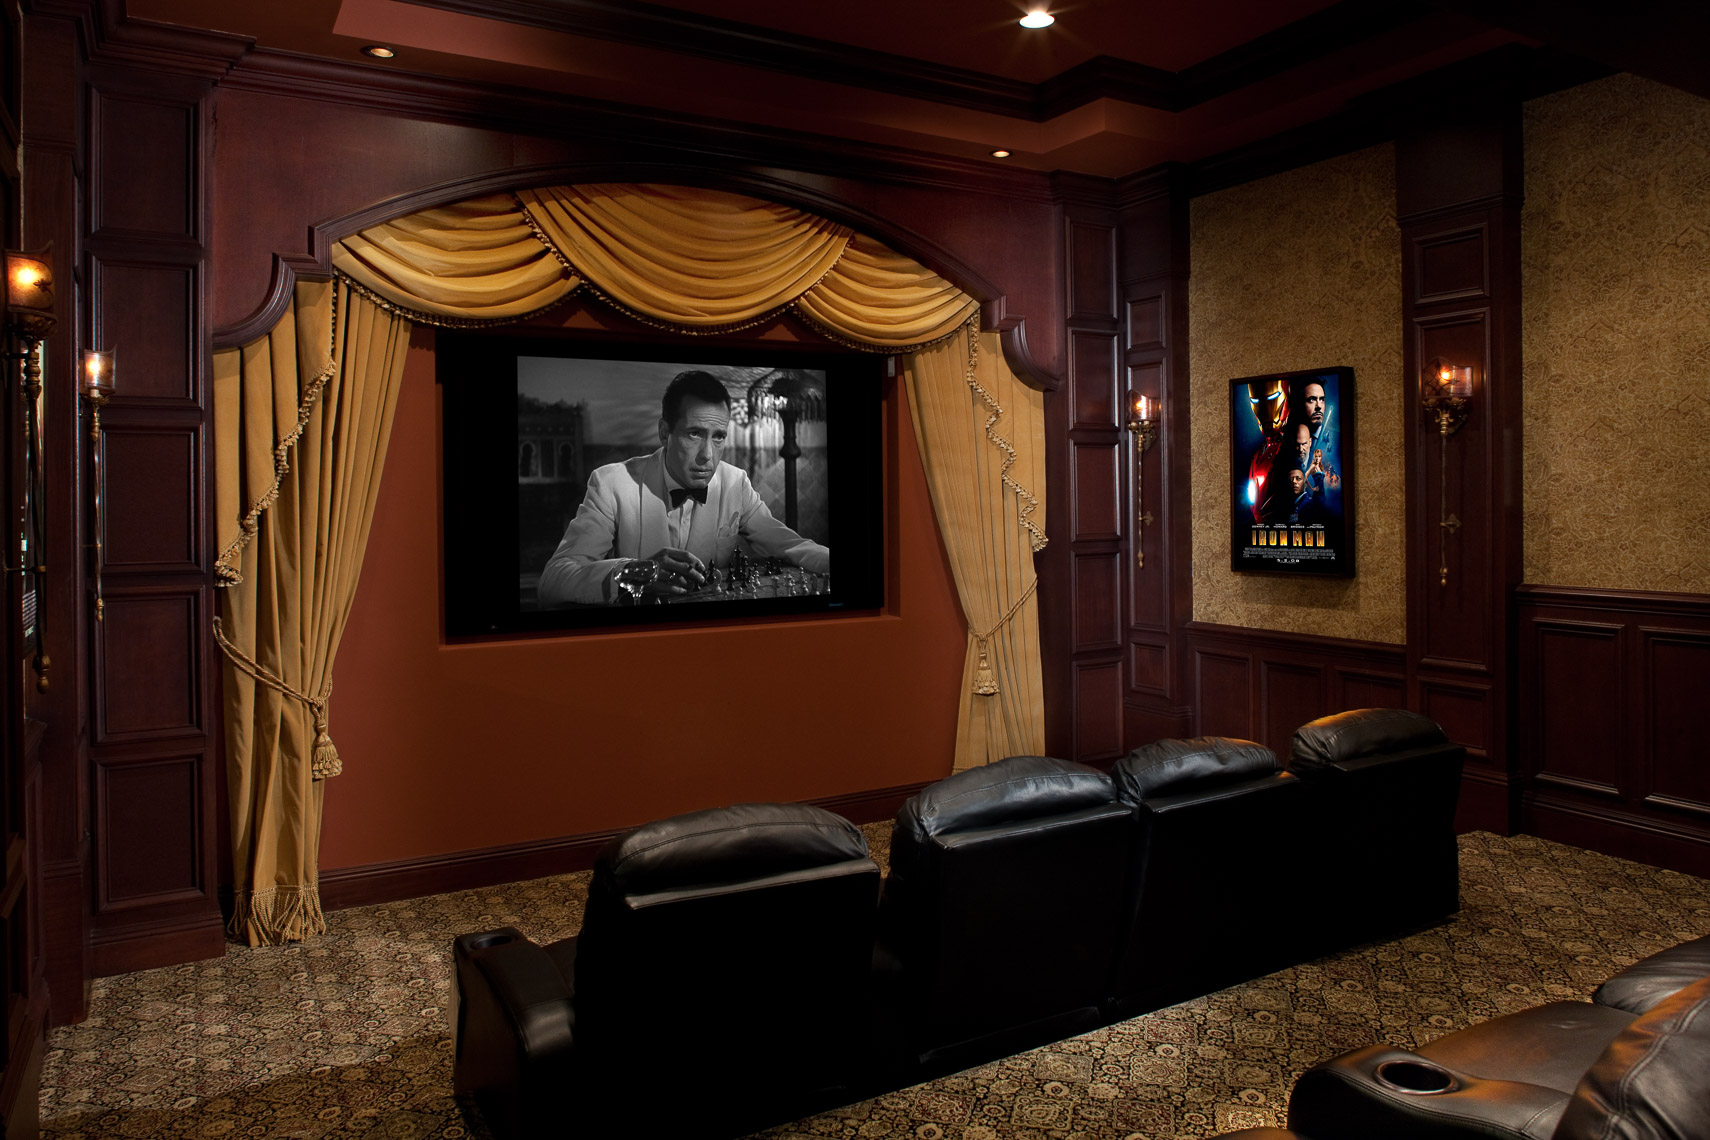 Contemporary Home Theater - Mark Borosch Photography - Tierra Verde, FL